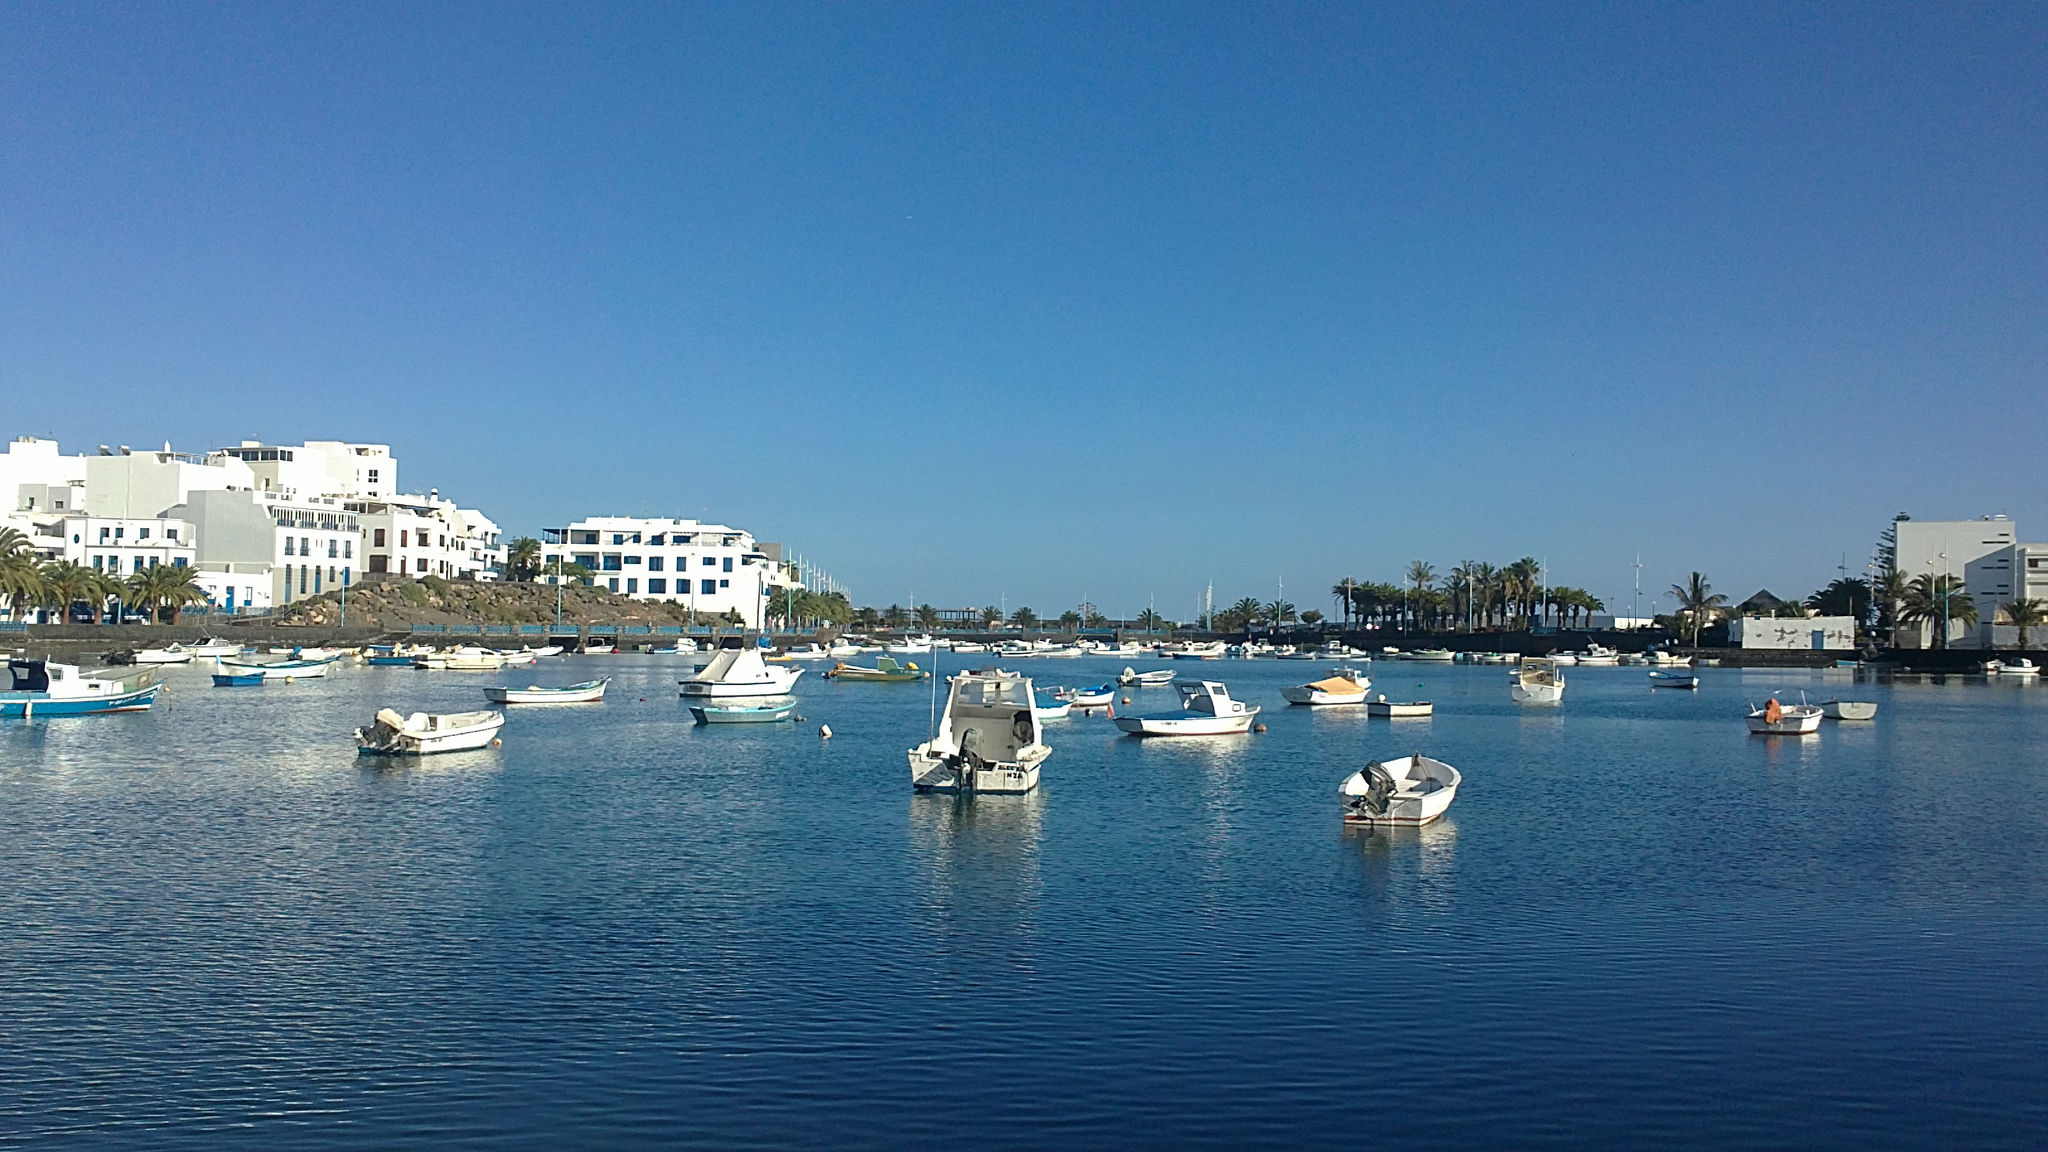 Wetter Lanzarote 16 Tage